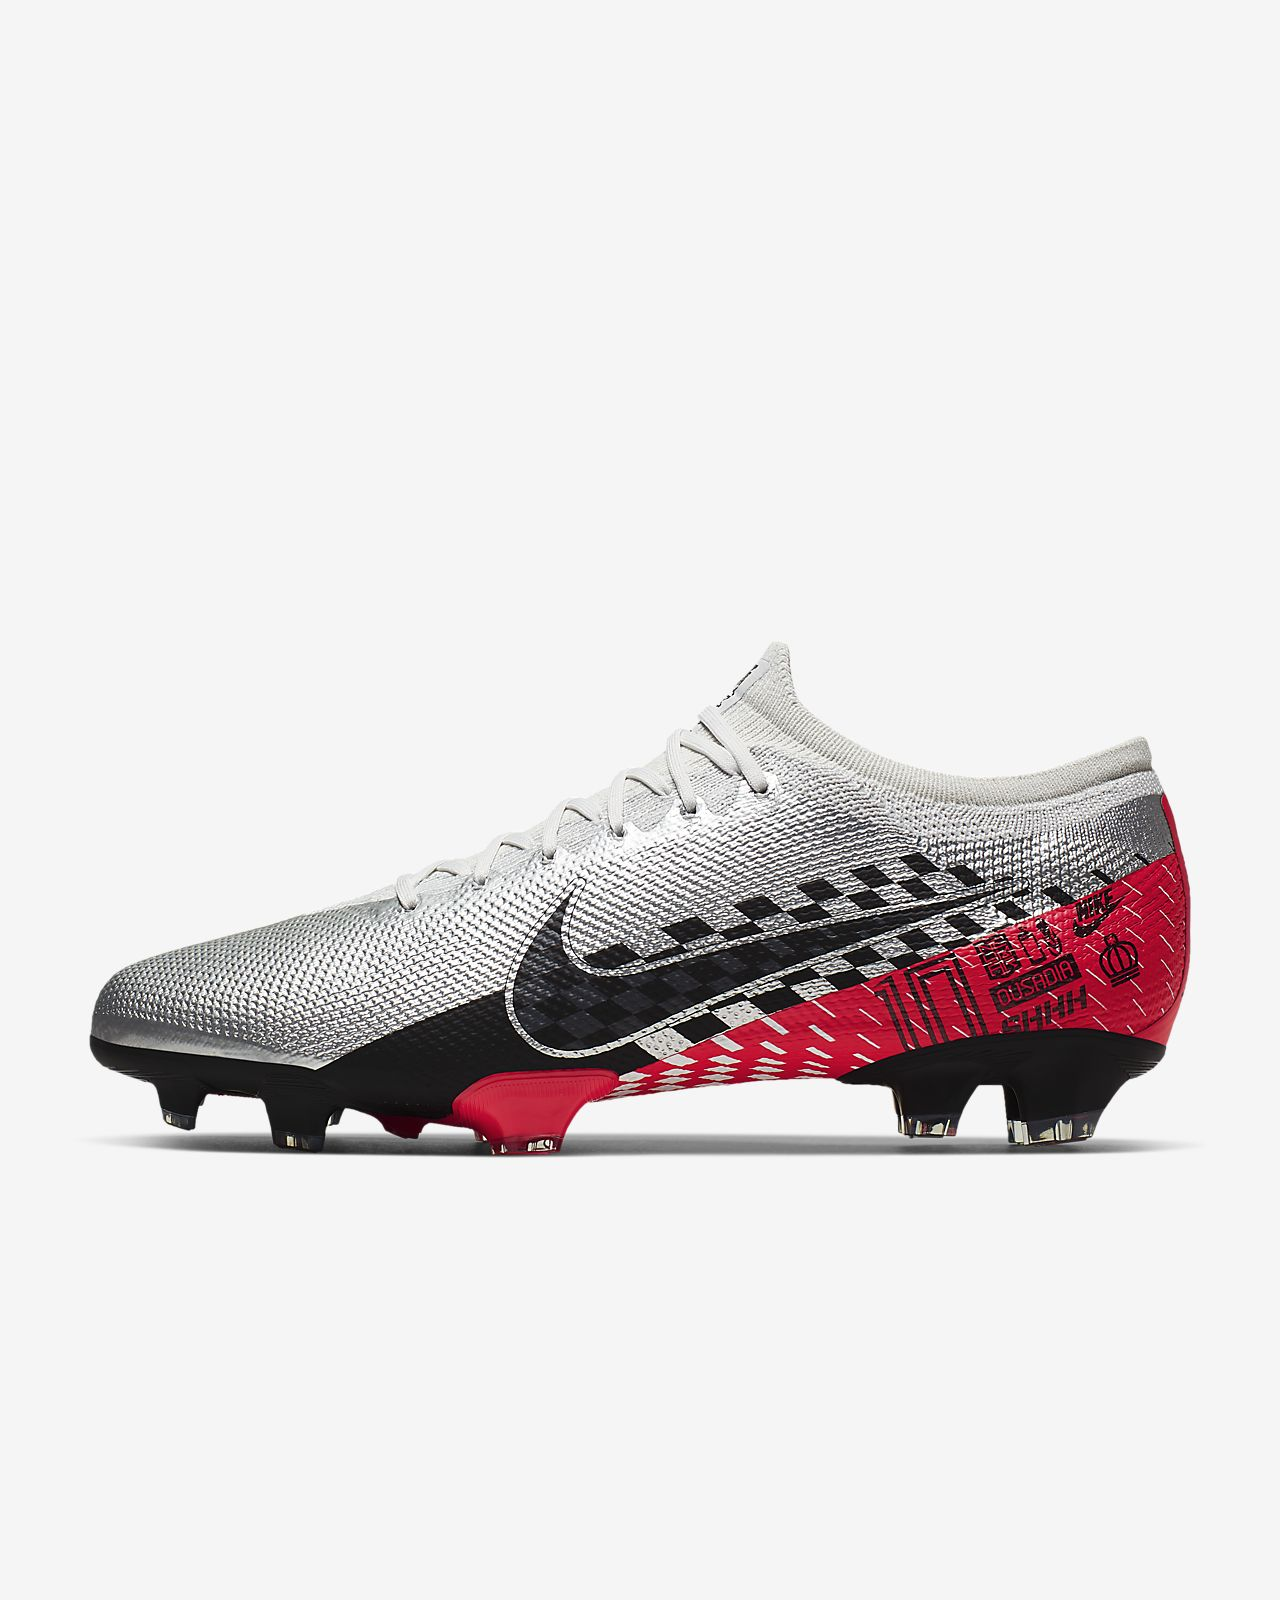 Nike Mercurial Vapor 13 Pro Neymar Jr. FG Firm-Ground Soccer Cleat